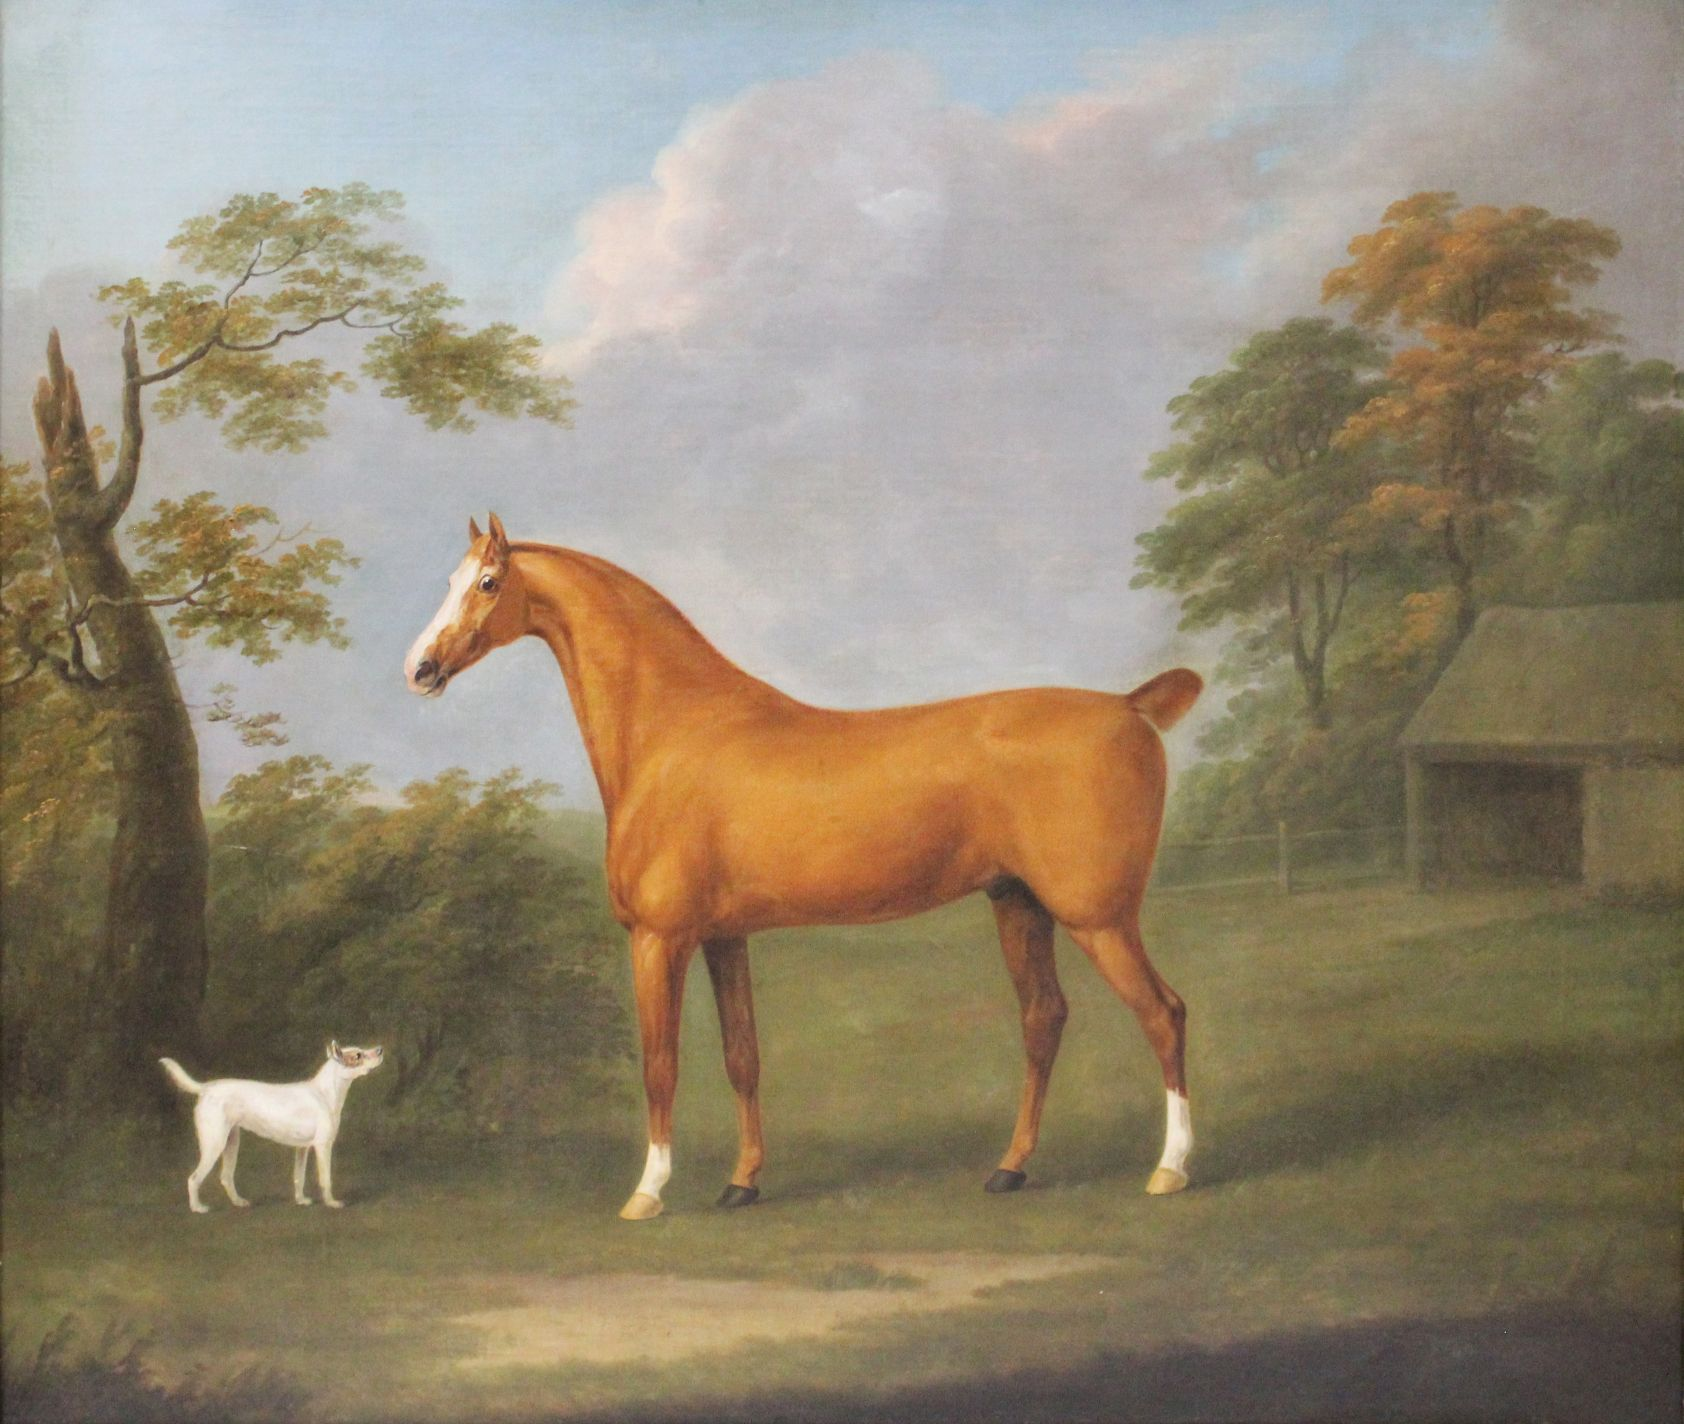 Highlights from the Equine Collection